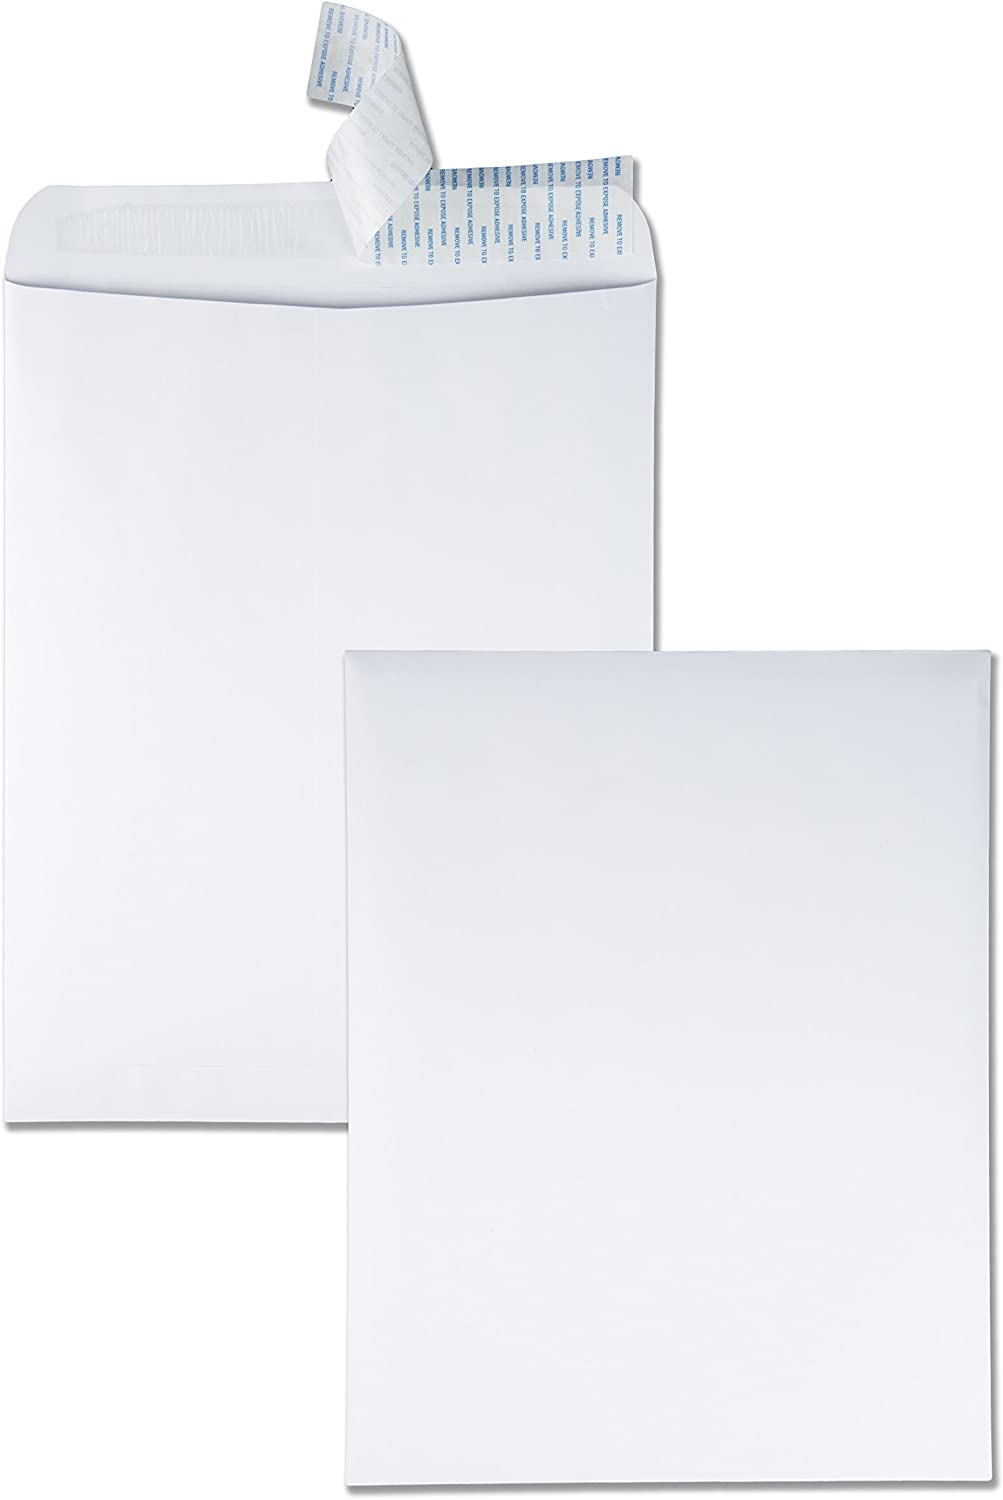 "Quality Park 12"" x 15-1/2"" Redi-Strip Envelopes, 28 lb. White Wove, Self-Sealing Closure, 100/Box (QUA44082) : Office Products"